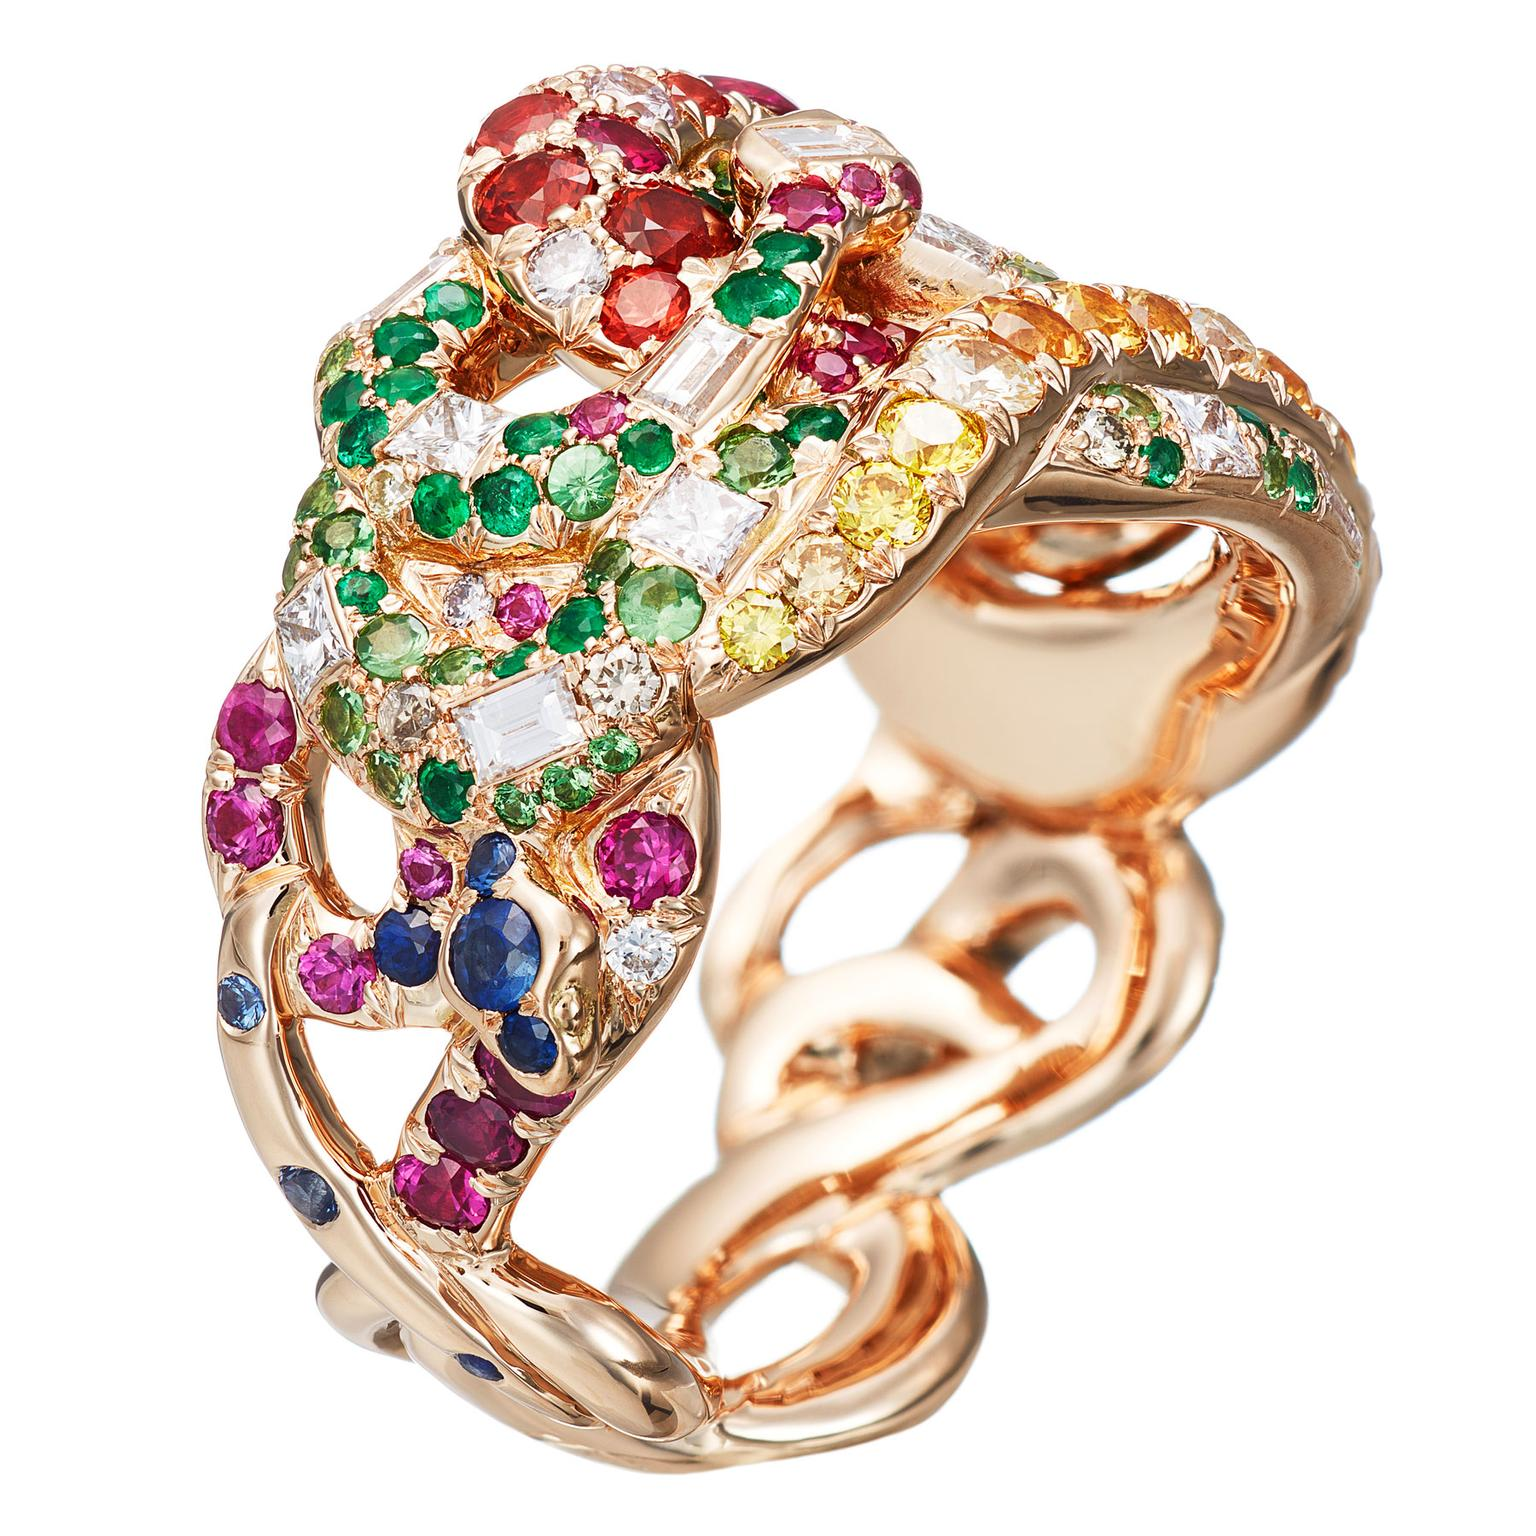 AENEA-Sarpa-Ring-4-Snakes-multicolor-gemstone